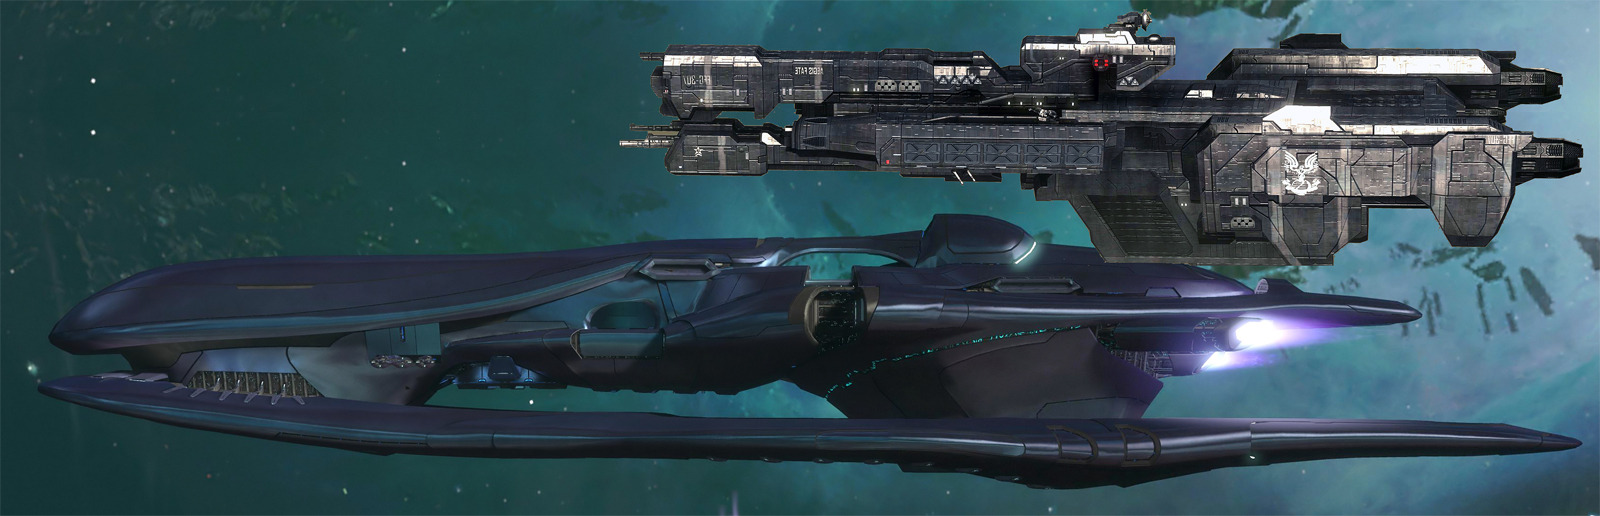 UNSC Beowulf